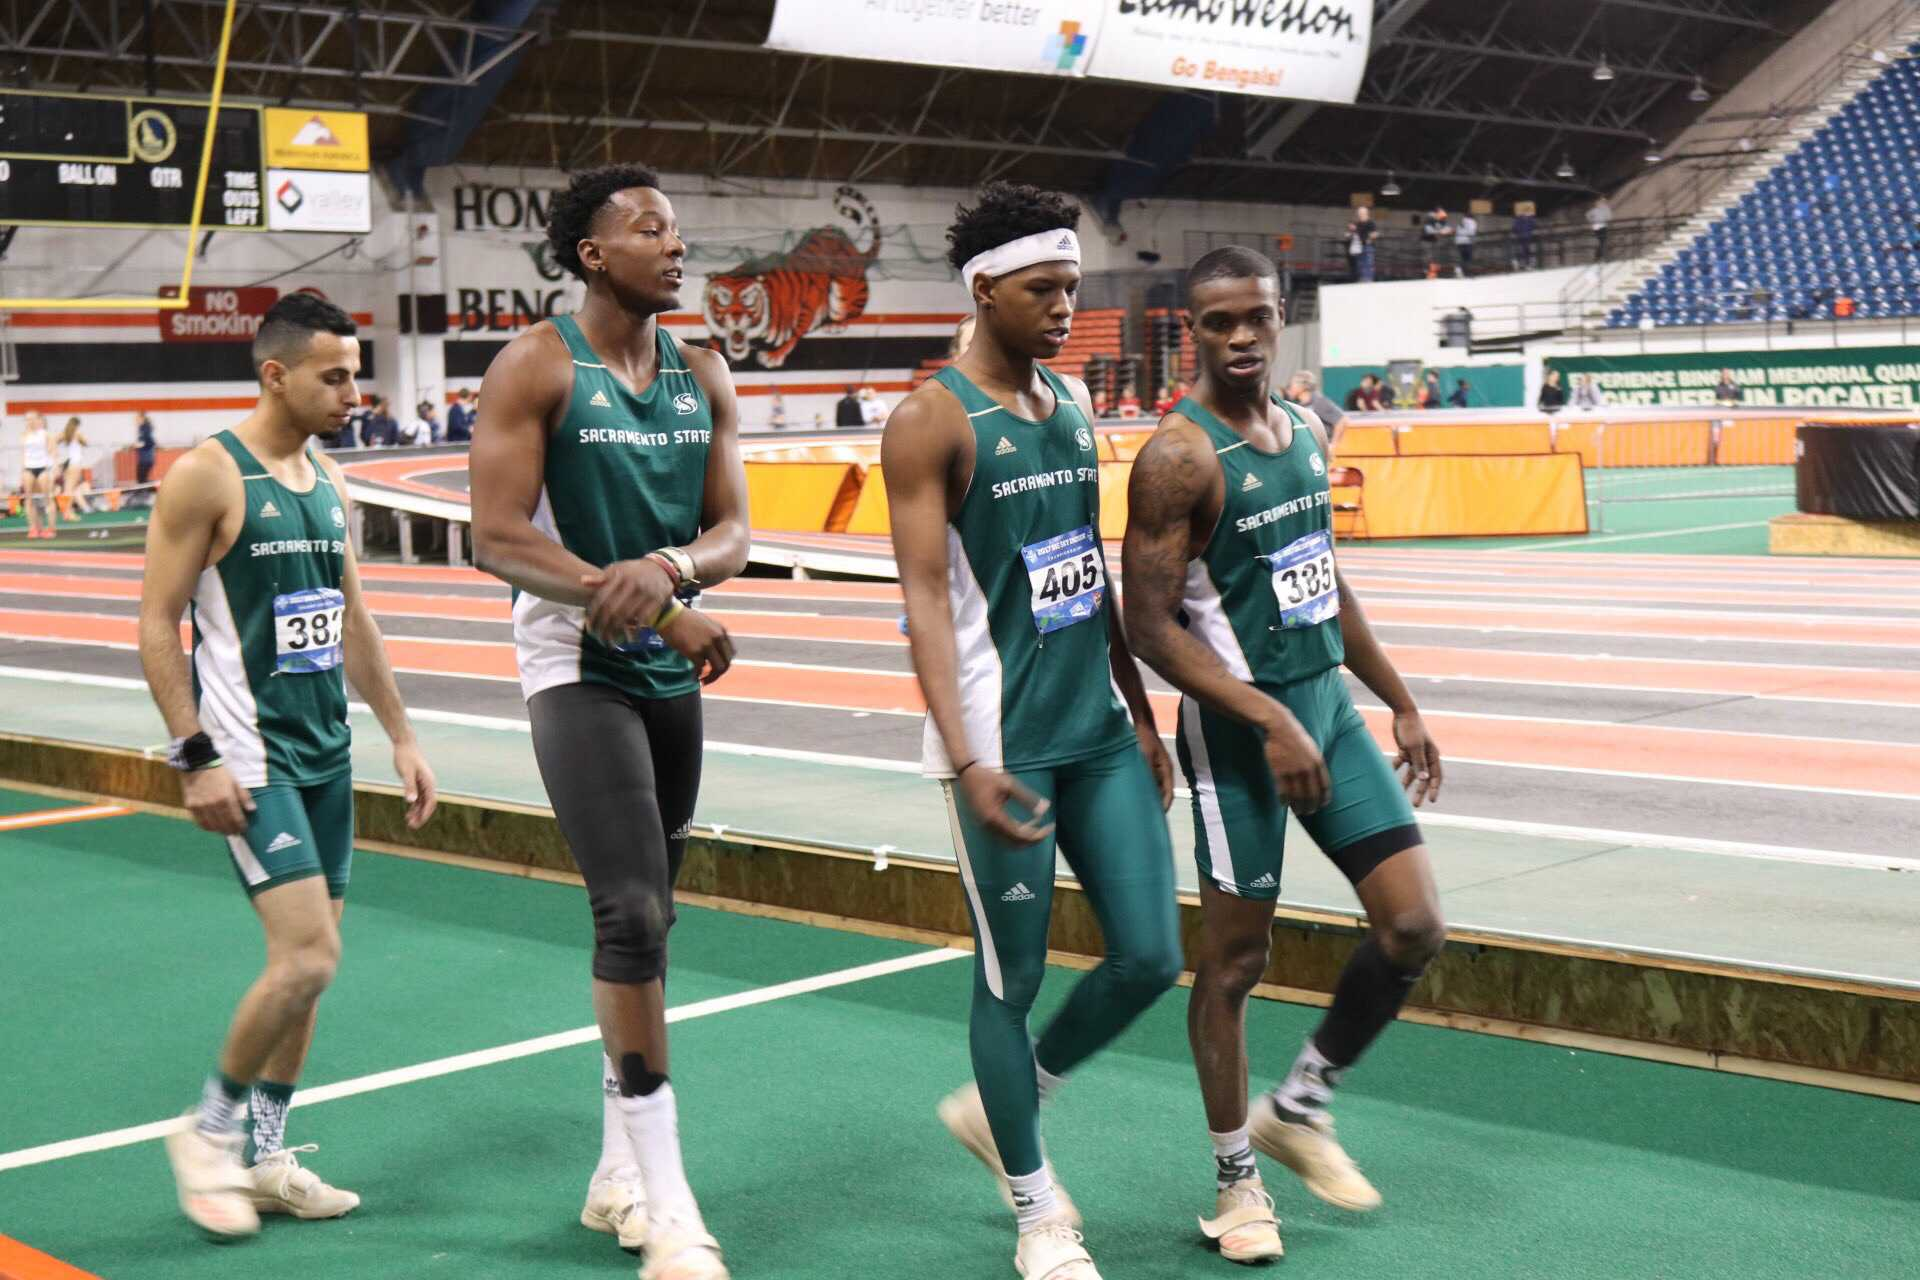 The Sacramento State men's triple-jump team, left to right, Mohamed Abdullah, Gathunga Ndirangu, Jah Strange and Darius Armstead ended the indoor track and field season ranked No. 4 in the country with an average of 14.78 meters. (Photo courtesy of Sacramento State track and field team)